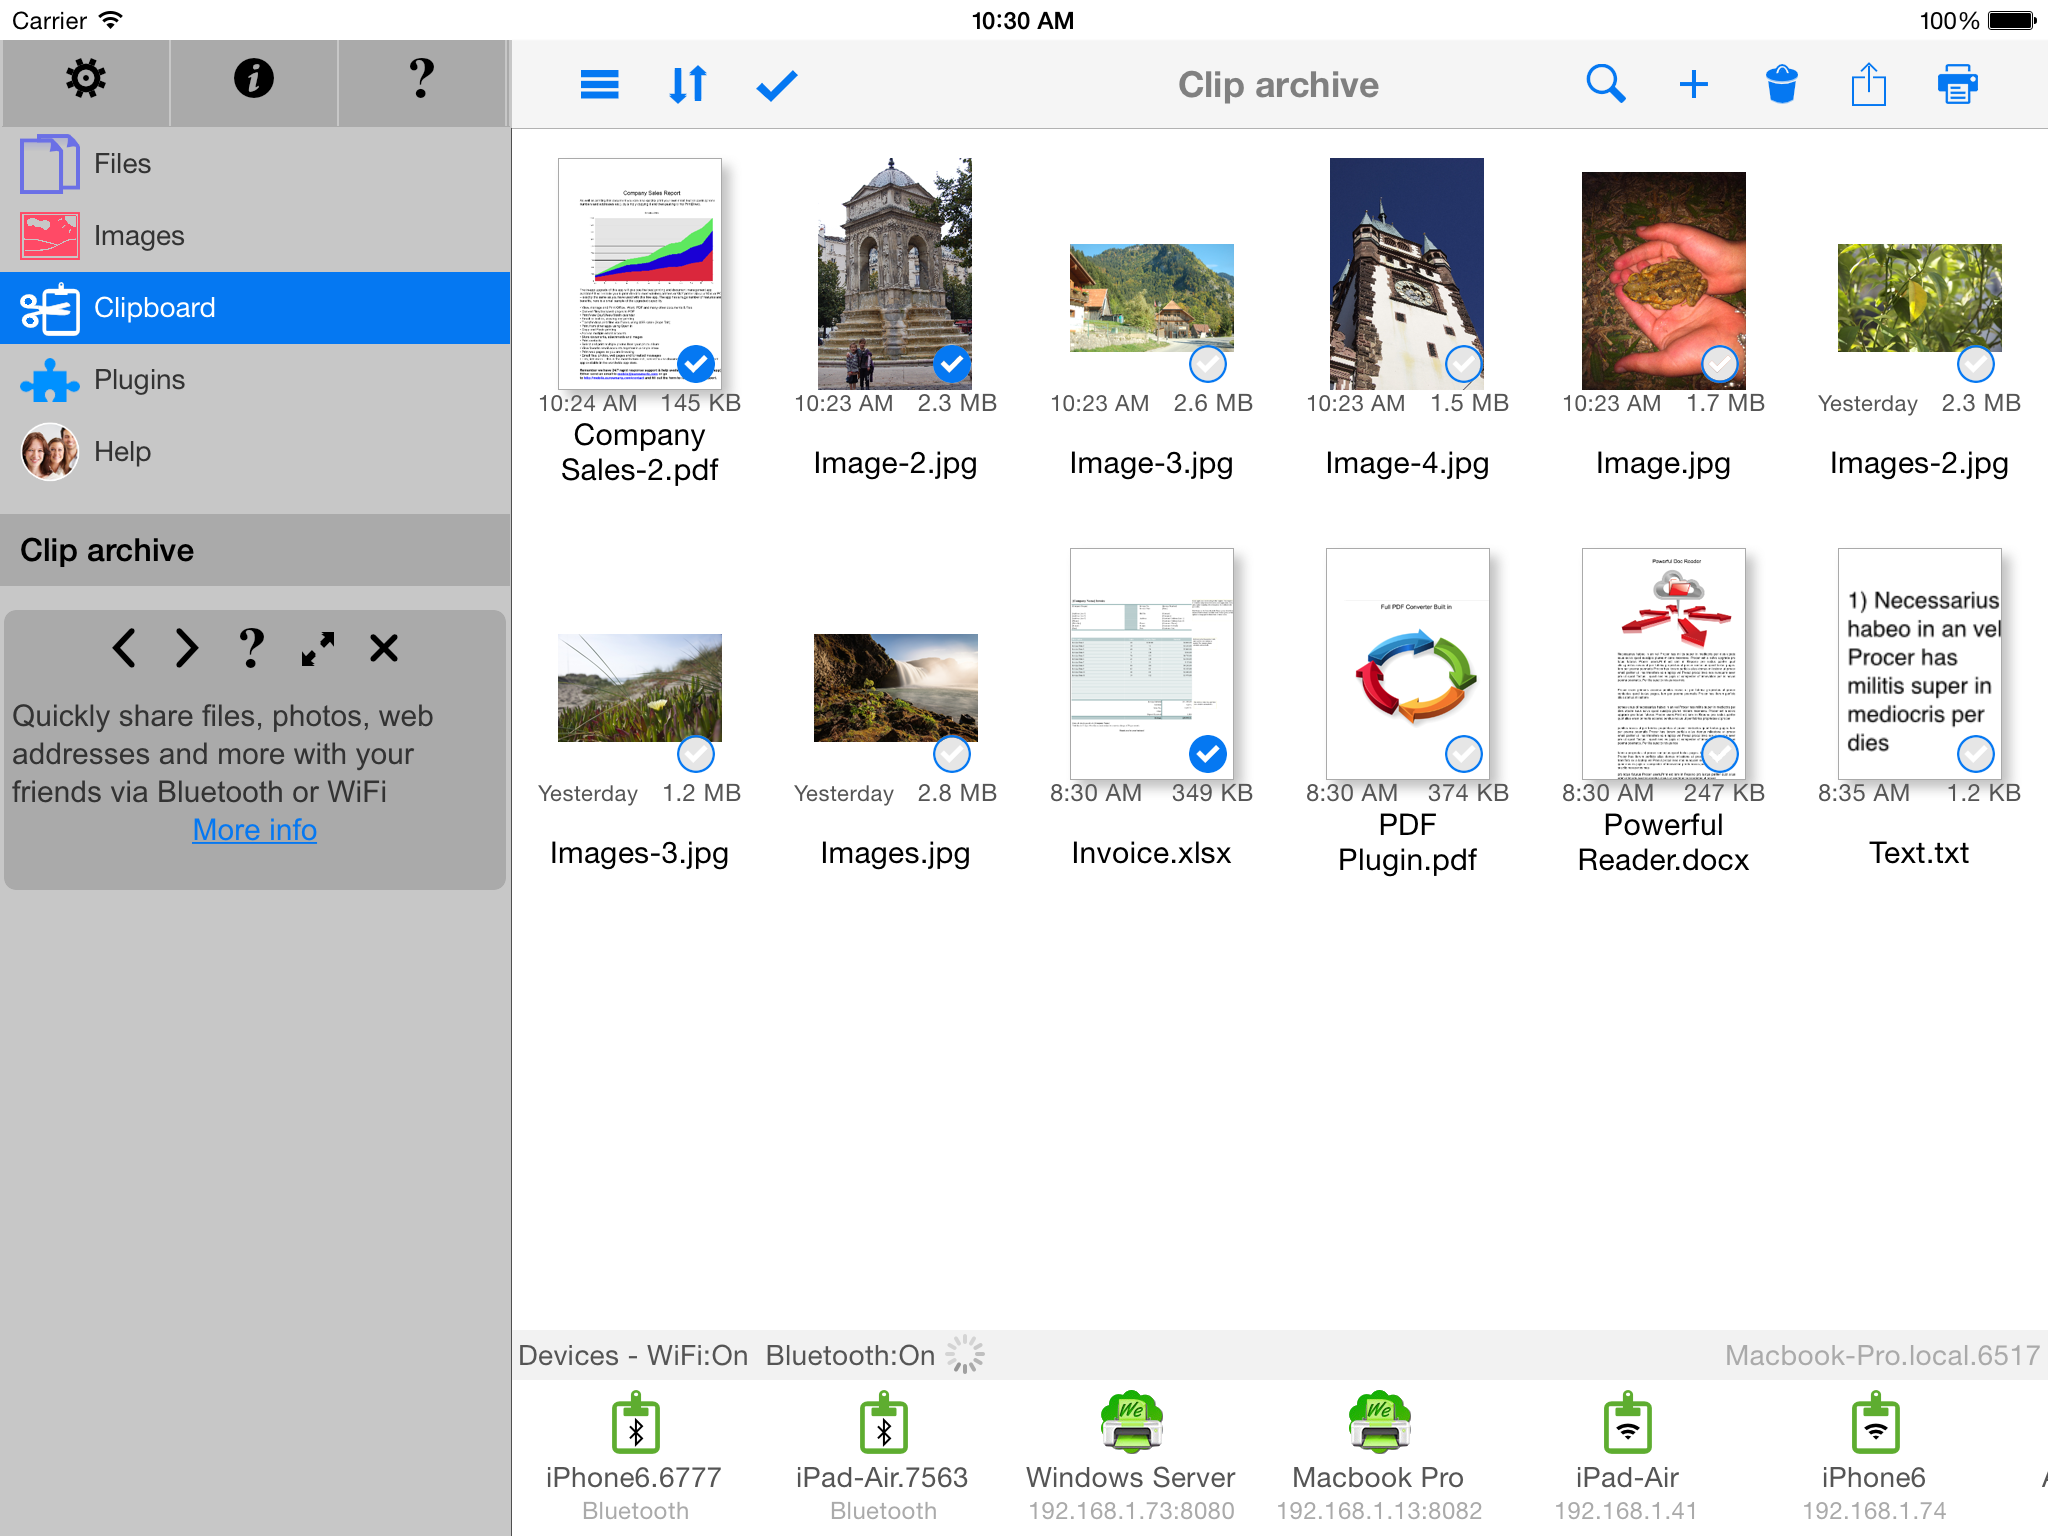 Manage all iPhone/iPad and Cloud Files - in FileCentral for iOS 9 Image